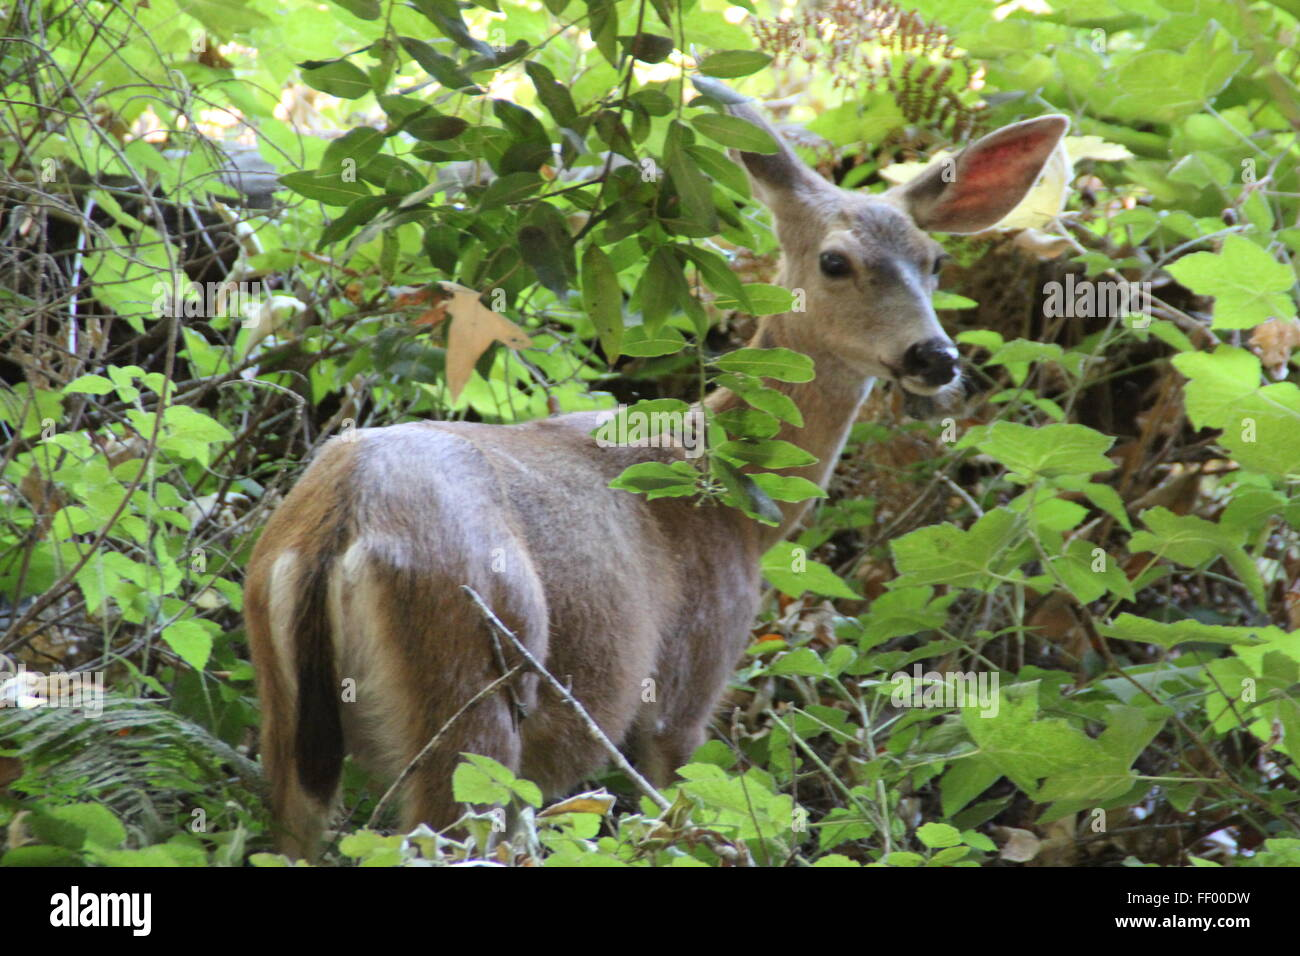 baby deer in the undergrowth Stock Photo